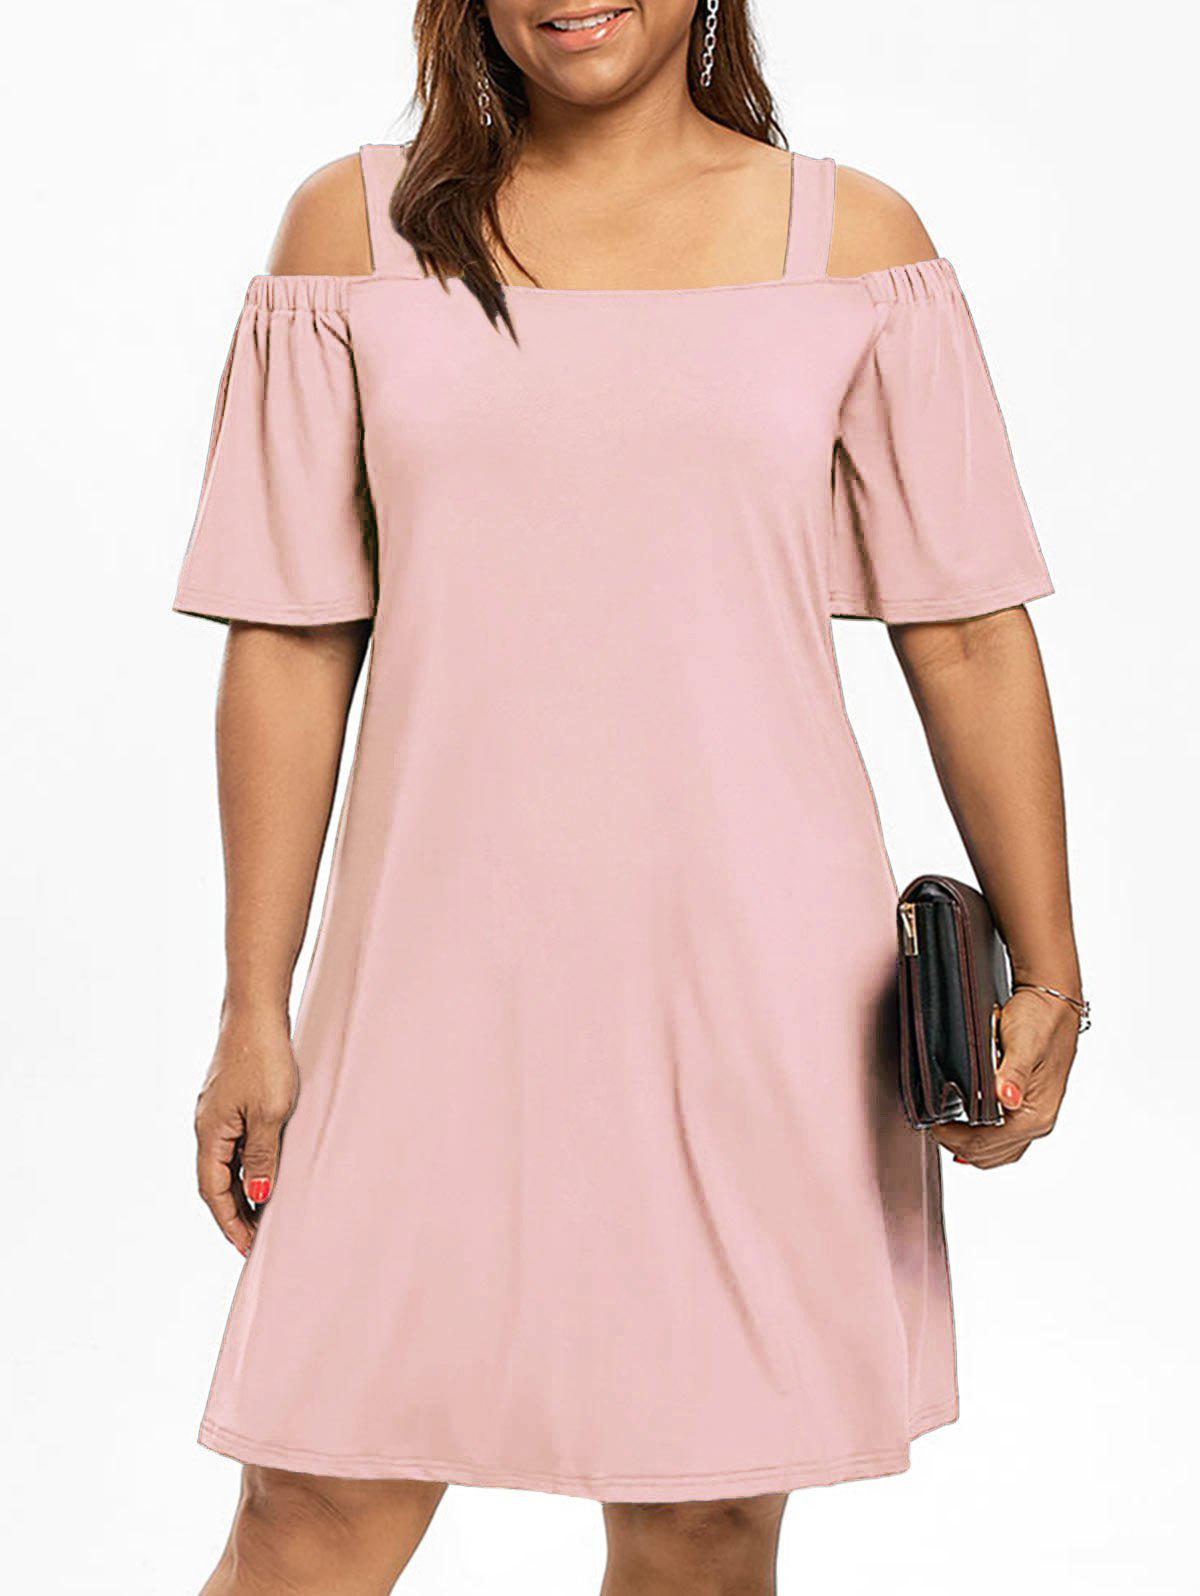 Cold Shoulder Half Sleeve Plus Size DressWOMEN<br><br>Size: 3XL; Color: LIGHT PINK; Style: Brief; Material: Polyester,Spandex; Silhouette: A-Line; Dresses Length: Knee-Length; Neckline: Square Collar; Sleeve Type: Flare Sleeve; Sleeve Length: Half Sleeves; Waist: Natural; Pattern Type: Solid Color; Elasticity: Elastic; With Belt: No; Season: Fall,Spring; Weight: 0.3200kg; Package Contents: 1 x Dress;